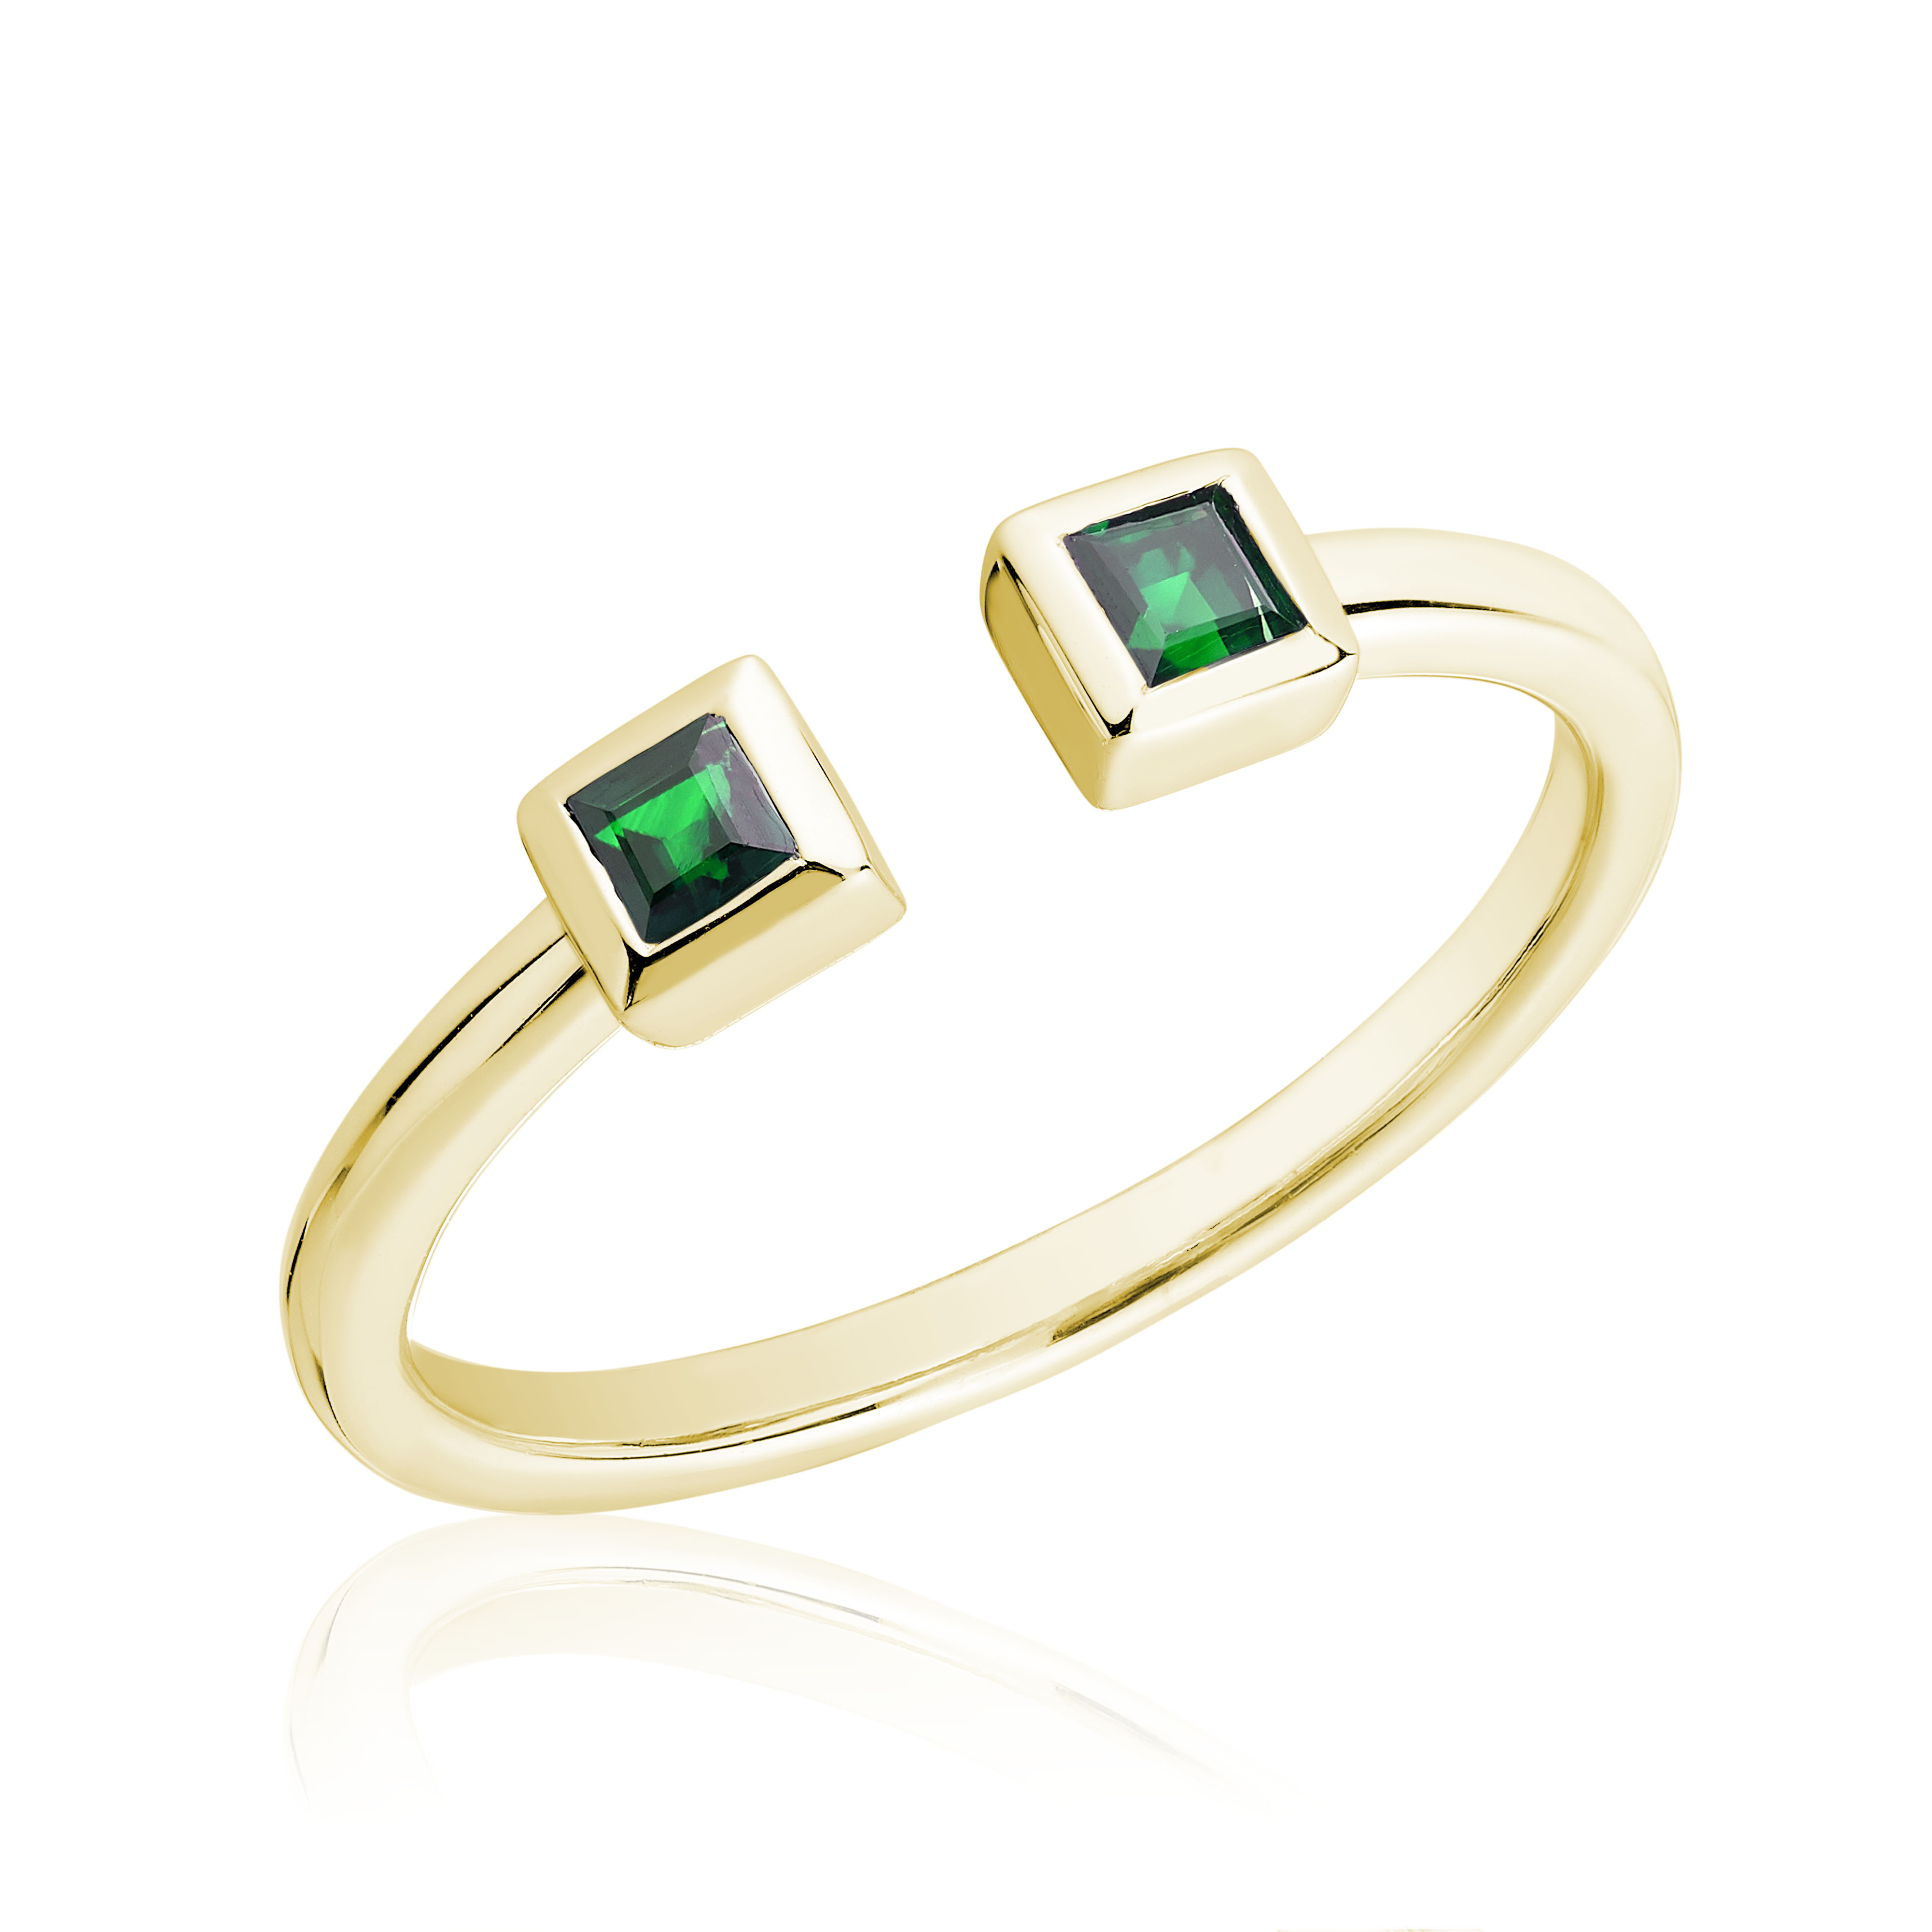 Ring for woman - 10K yellow gold & Emerald